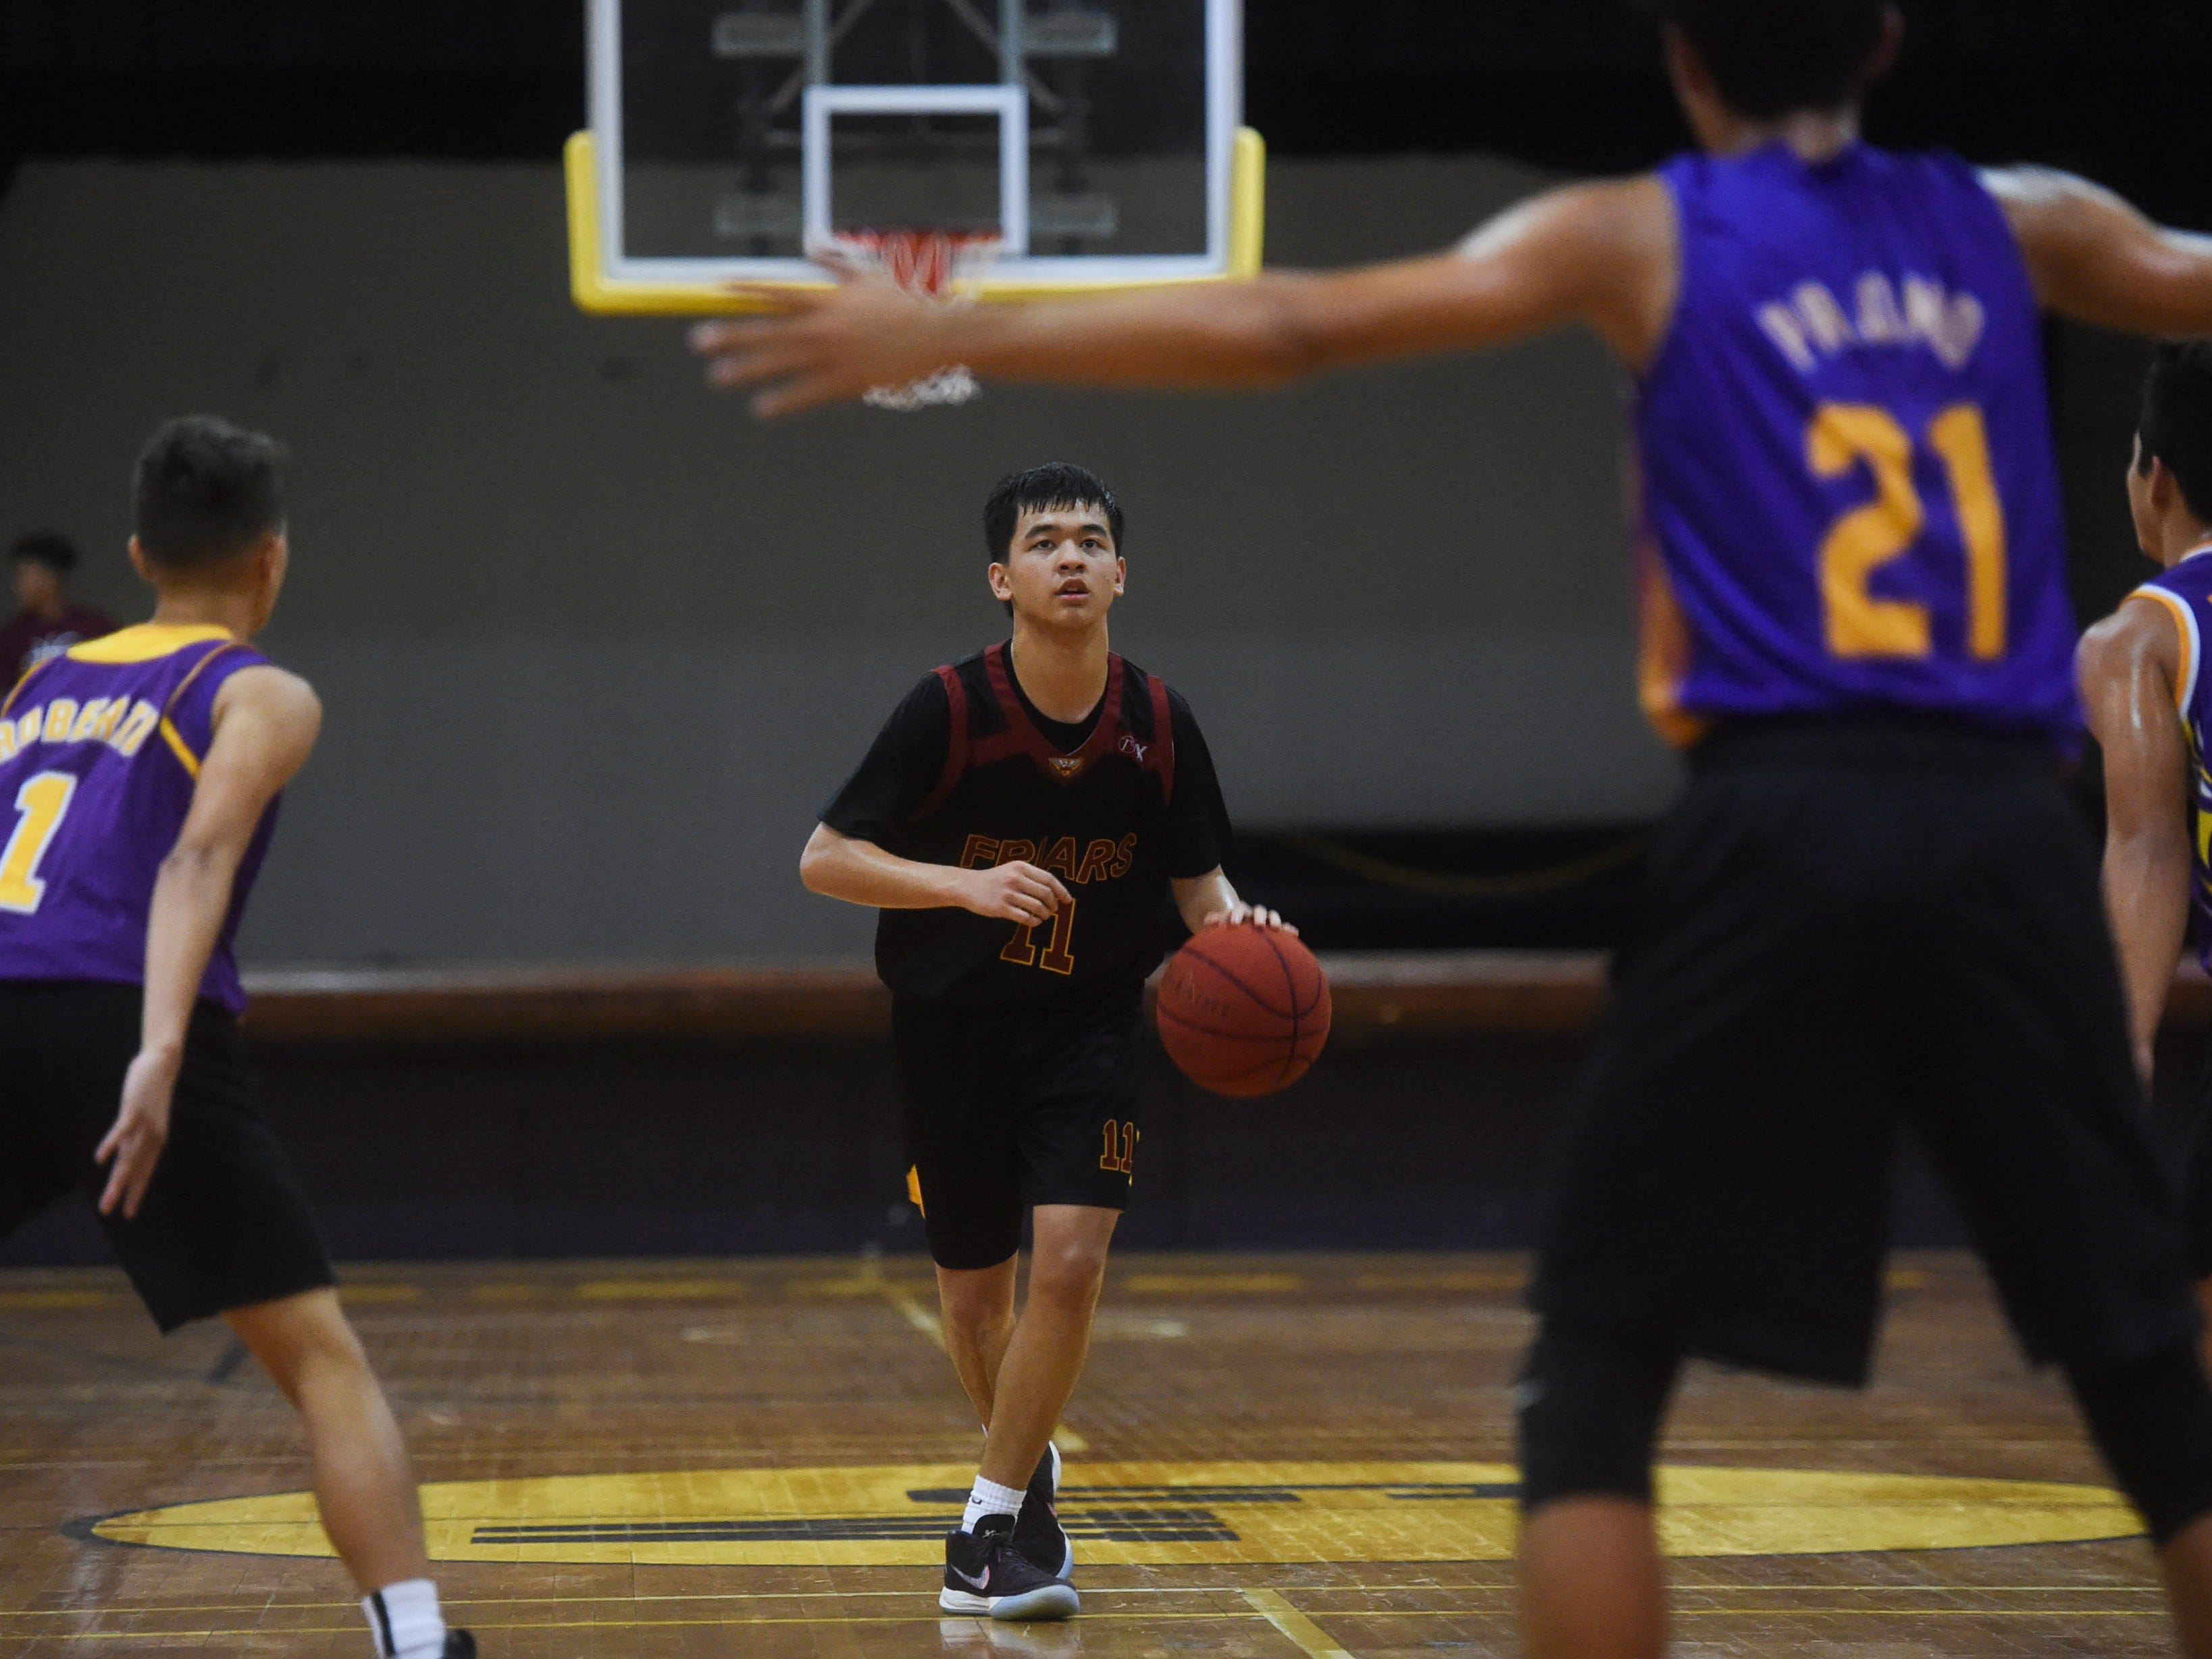 Father Duenas' Colin Santiago (11) brings the ball down against the George Washington Geckos during their Independent Interscholastic Athletic Association of Guam Boys' Basketball game at the GW High School gym, Jan. 19, 2019. The Friars came through with a 52-69 comeback victory over the Geckos after trailing in the first half.